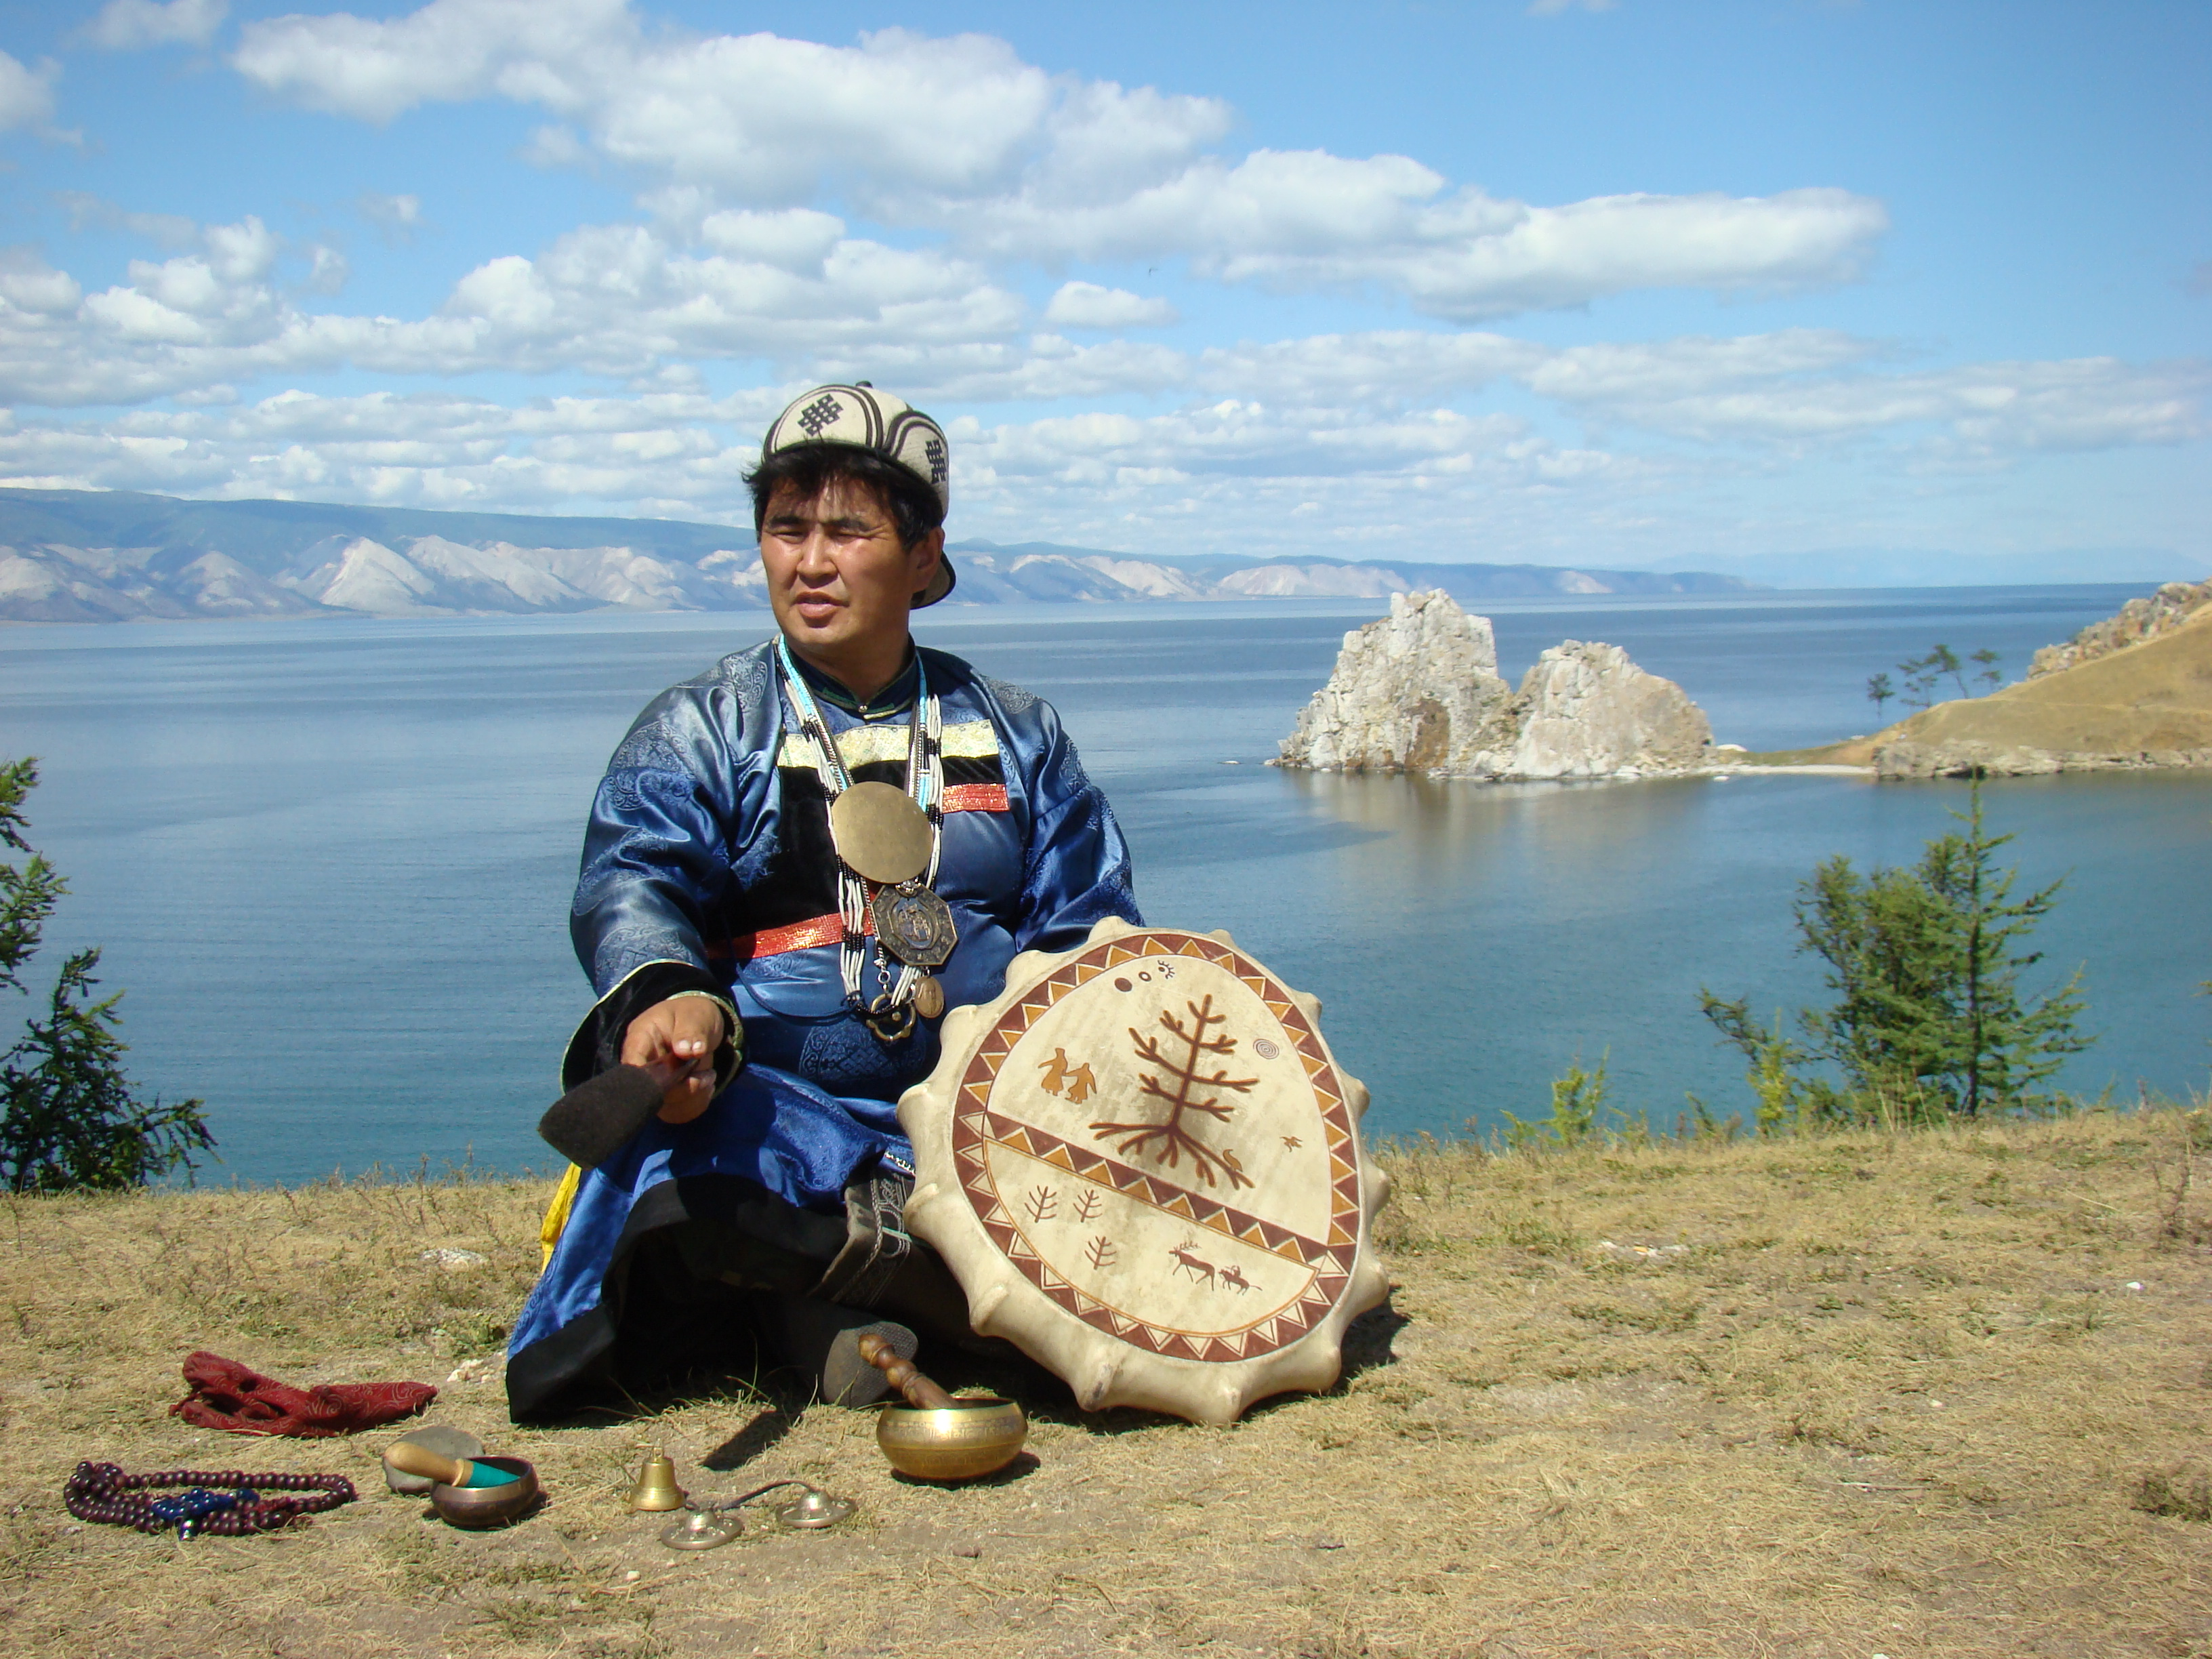 A ritually dressed shaman poses with his drum by the shore.